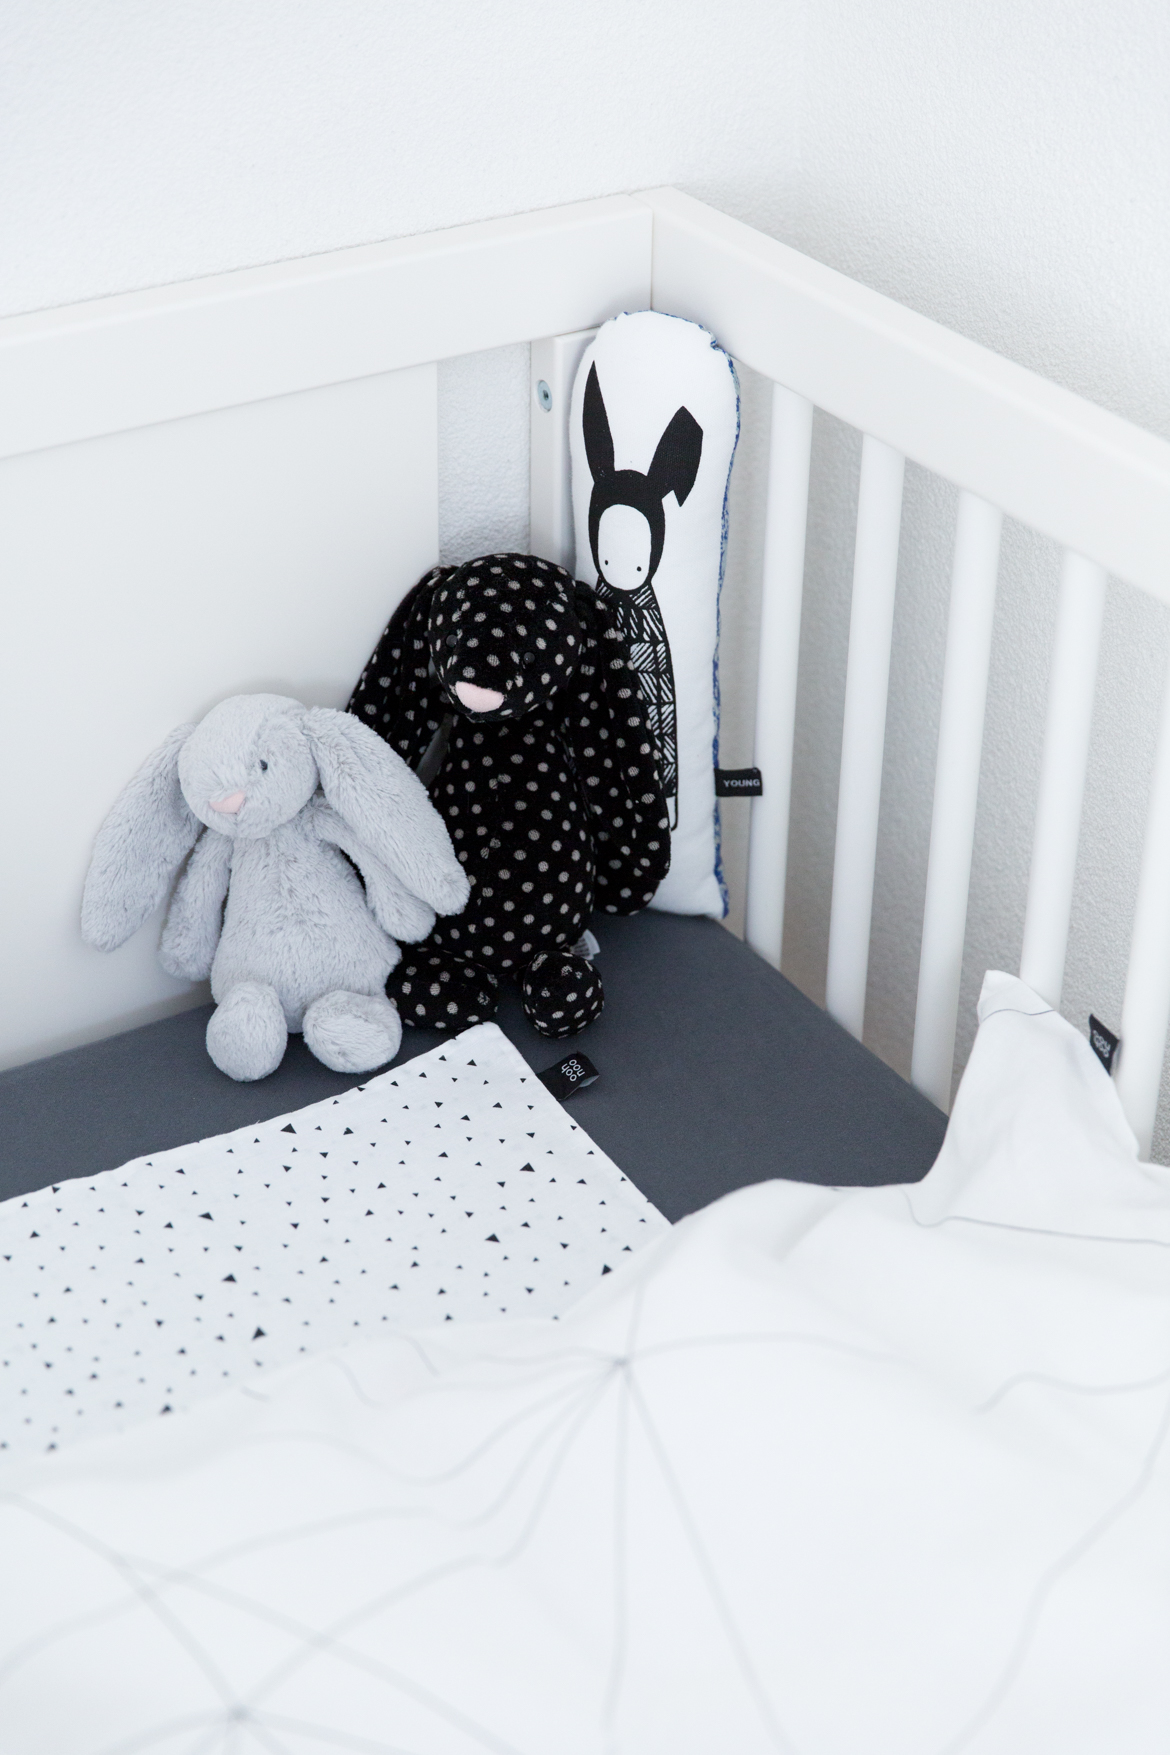 Monochrome Ooh Noo Kids Bedding